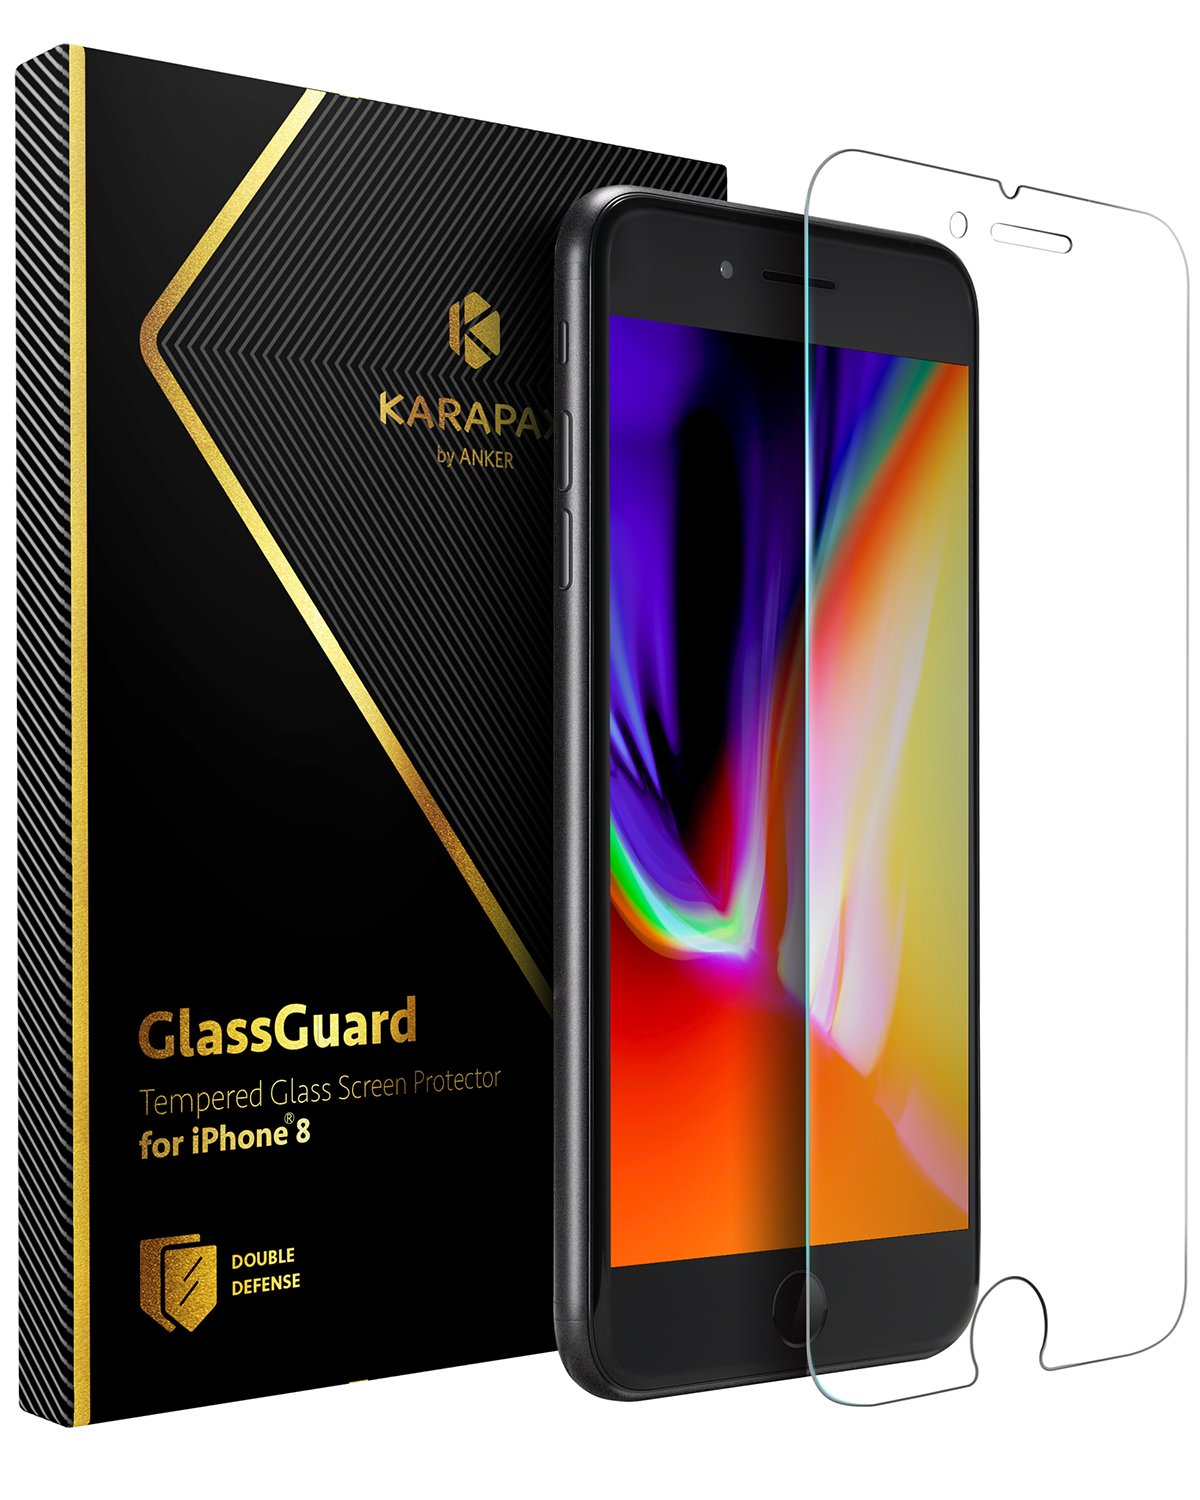 Anker KARAPAX GlassGuard iPhone 8 / 7 用